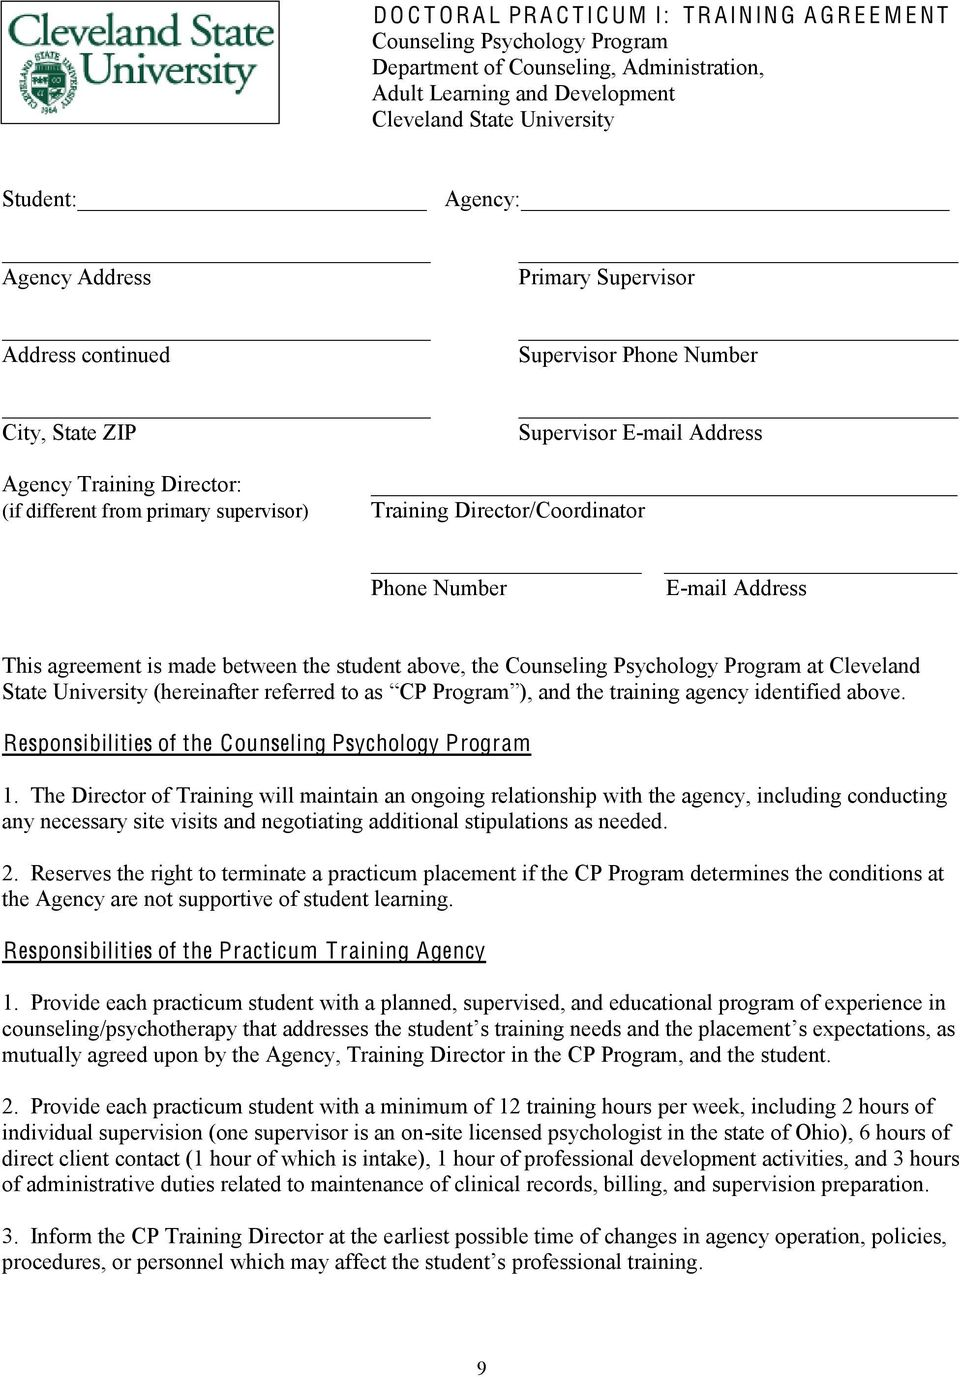 Training Director/Coordinator Phone Number E-mail Address This agreement is made between the student above, the Counseling Psychology Program at Cleveland State University (hereinafter referred to as